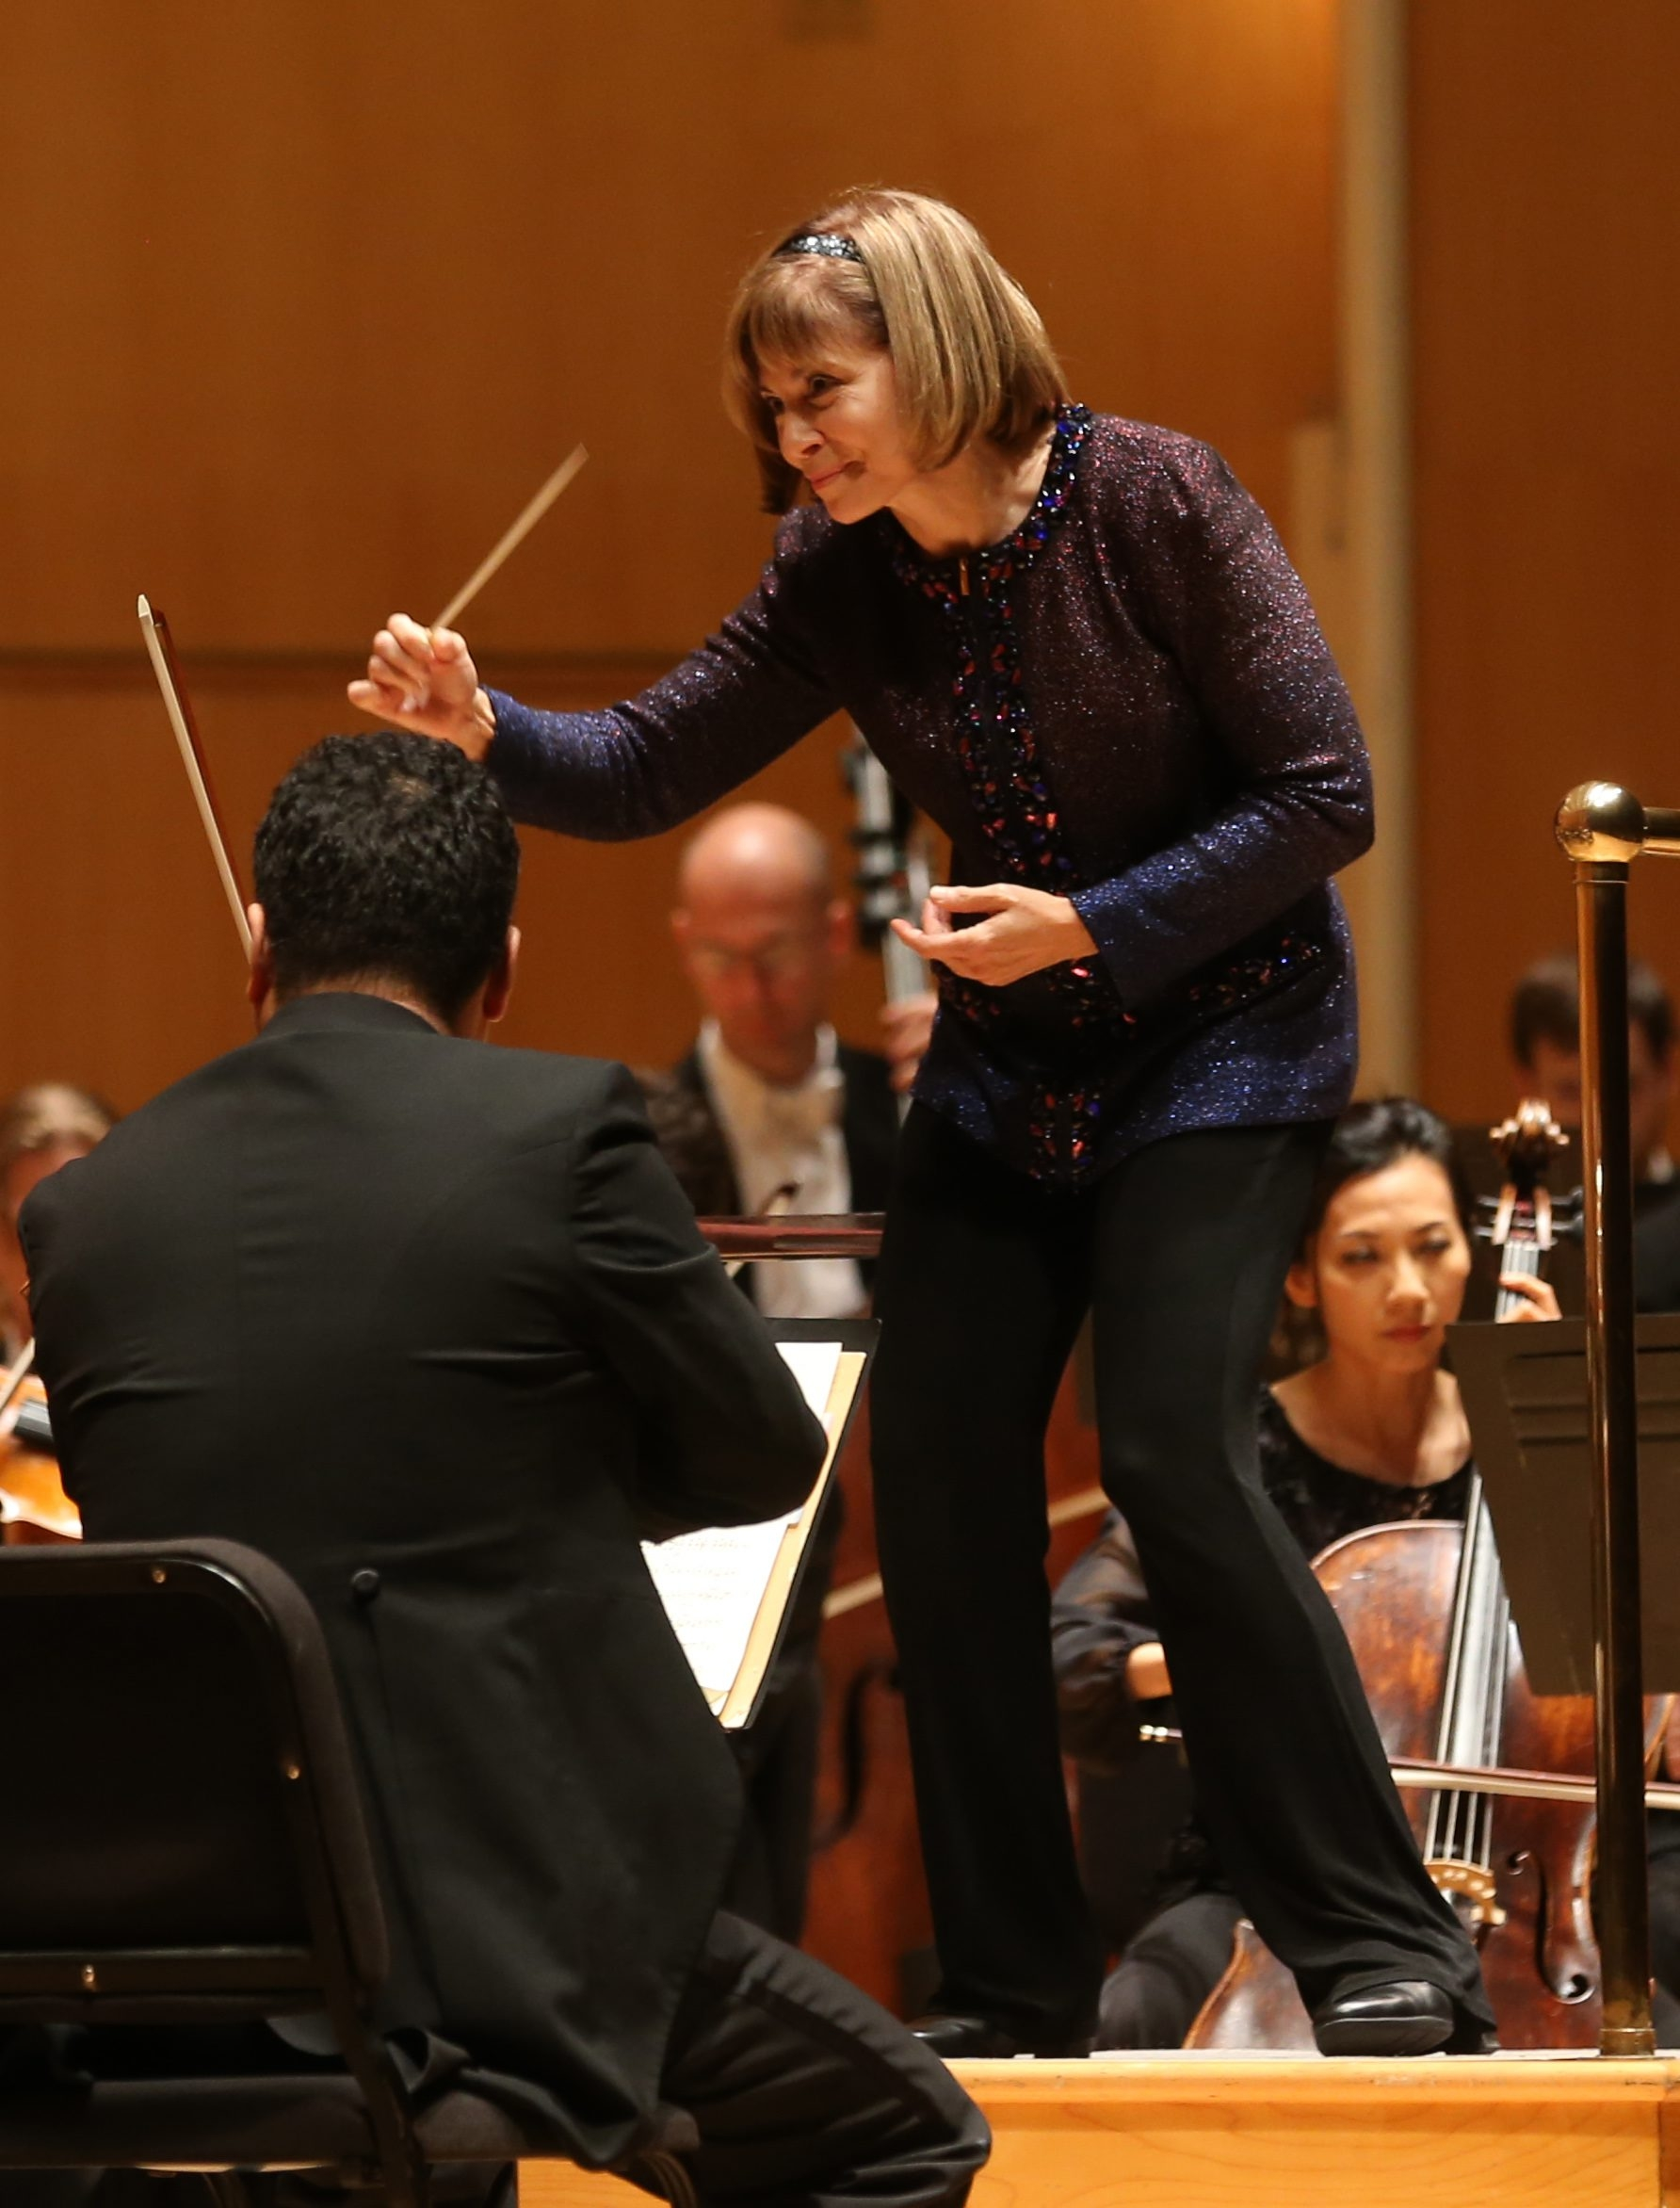 The BPO had its opening night gala, Wednesday, Sept. 16, 2015.  JoAnn Falletta, Music Director since 1999 has raised the BPO to a new level of national and international prominence.  (Sharon Cantillon/Buffalo News)